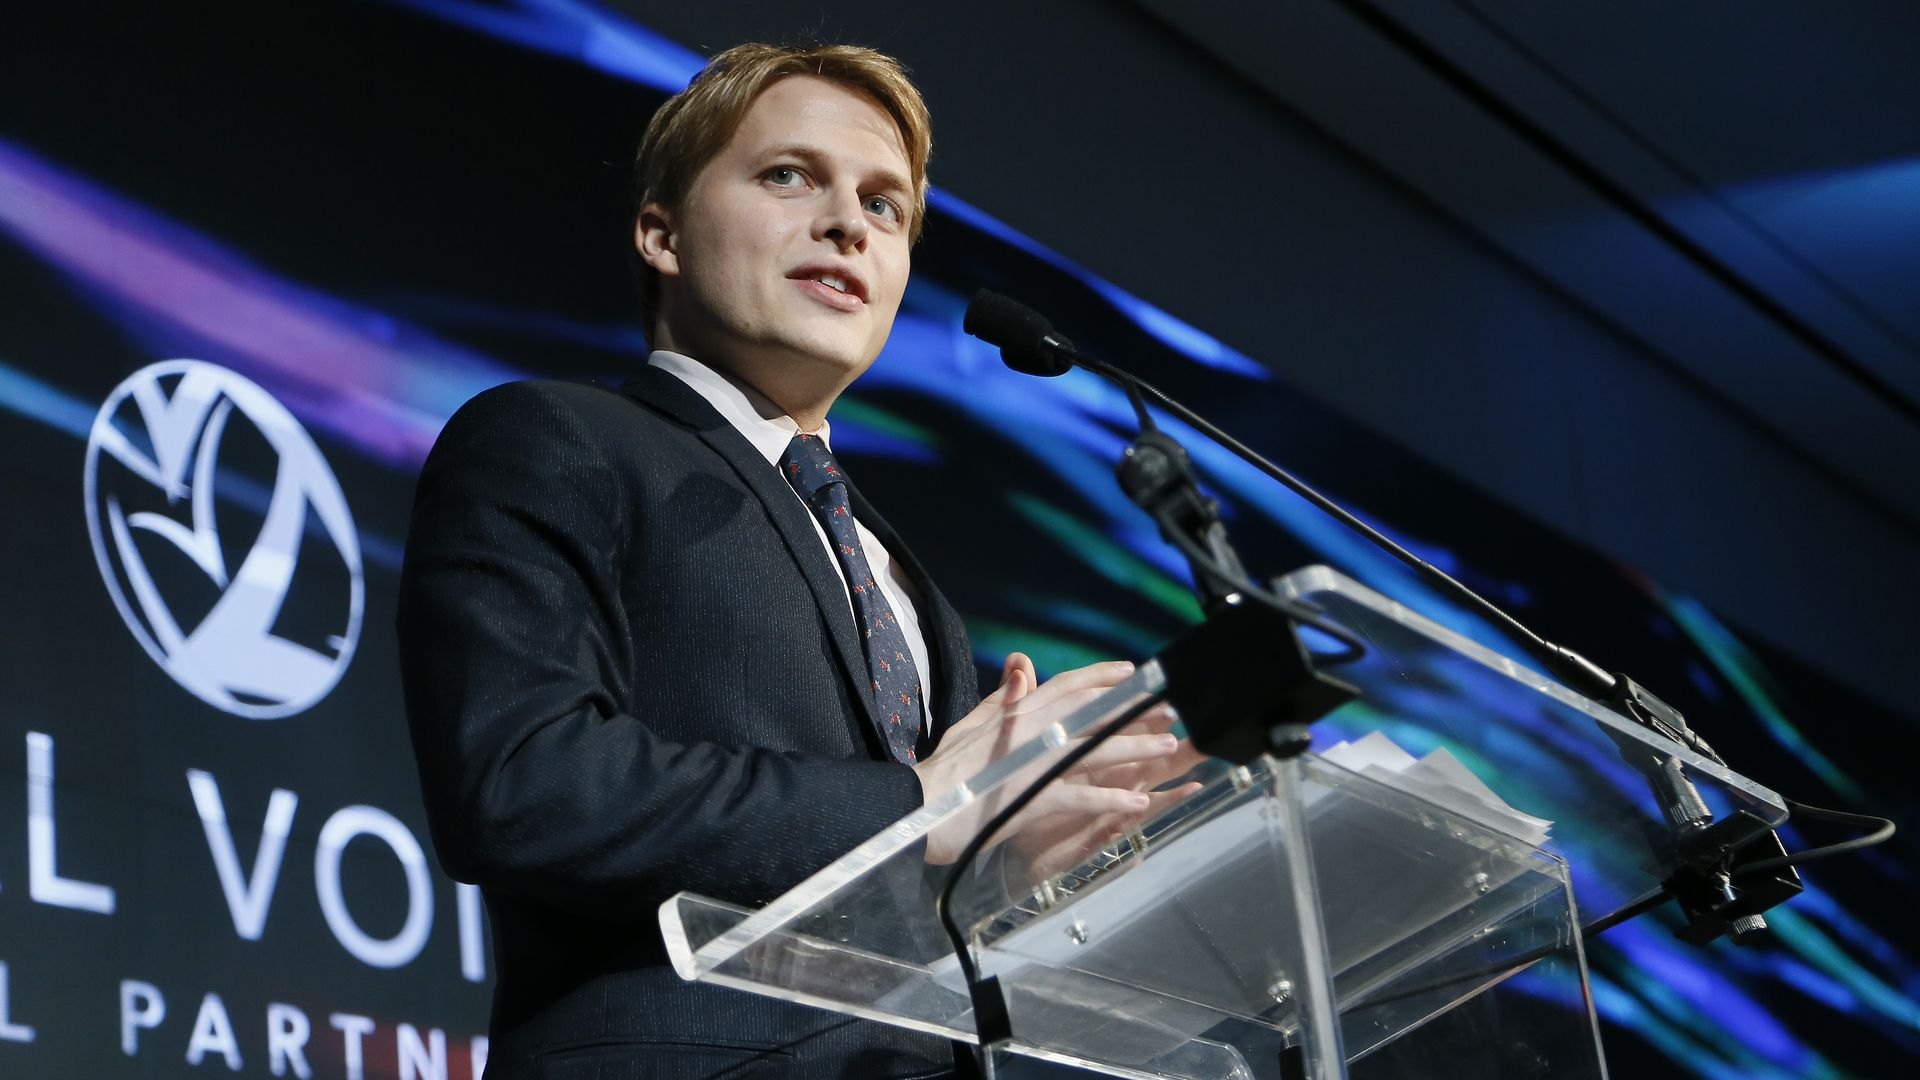 Ronan Farrow speaks on stage during Vital Voices Global Partnership: 2017 Voices Against Solidarity Awards.